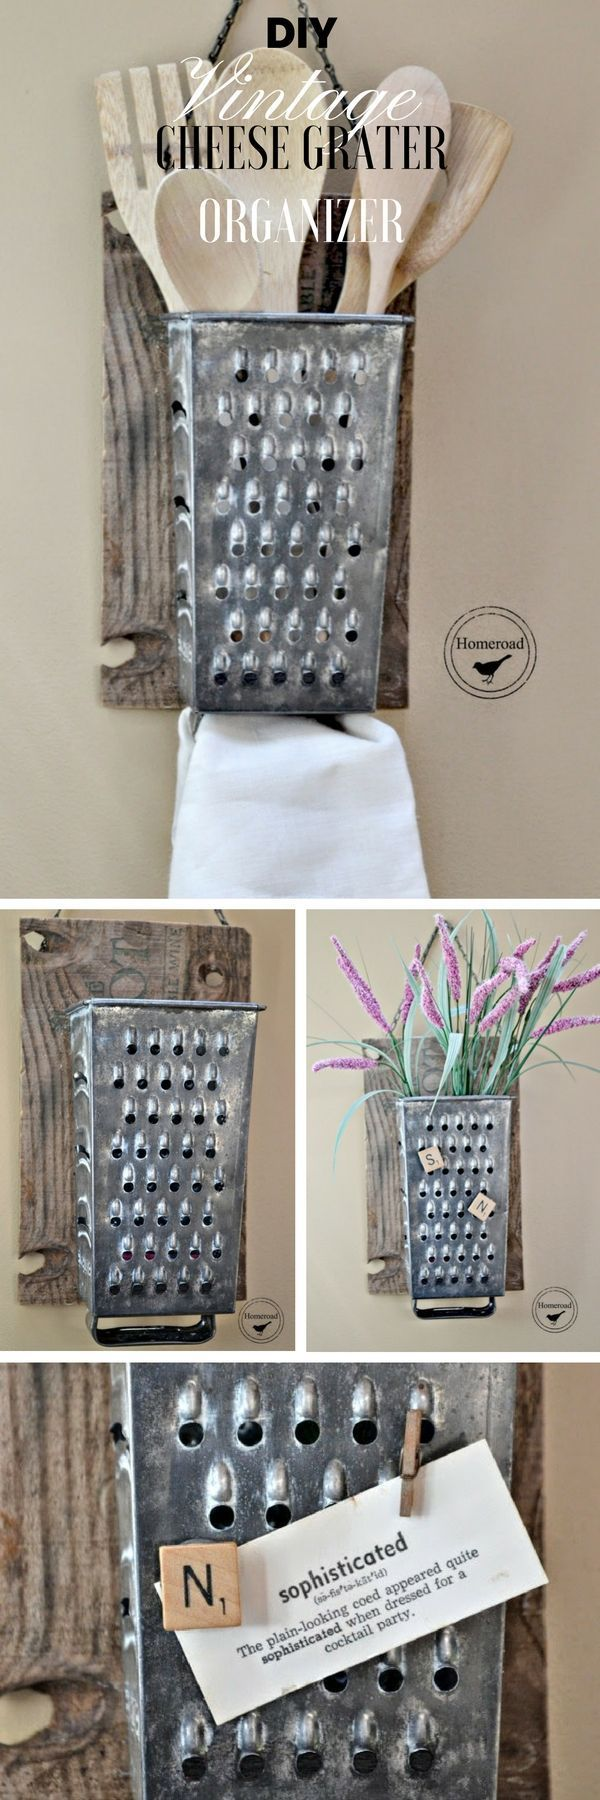 Check Out The Tutorial Diy Vintage Cheese Grater Organizer Istandarddesign New Decorating